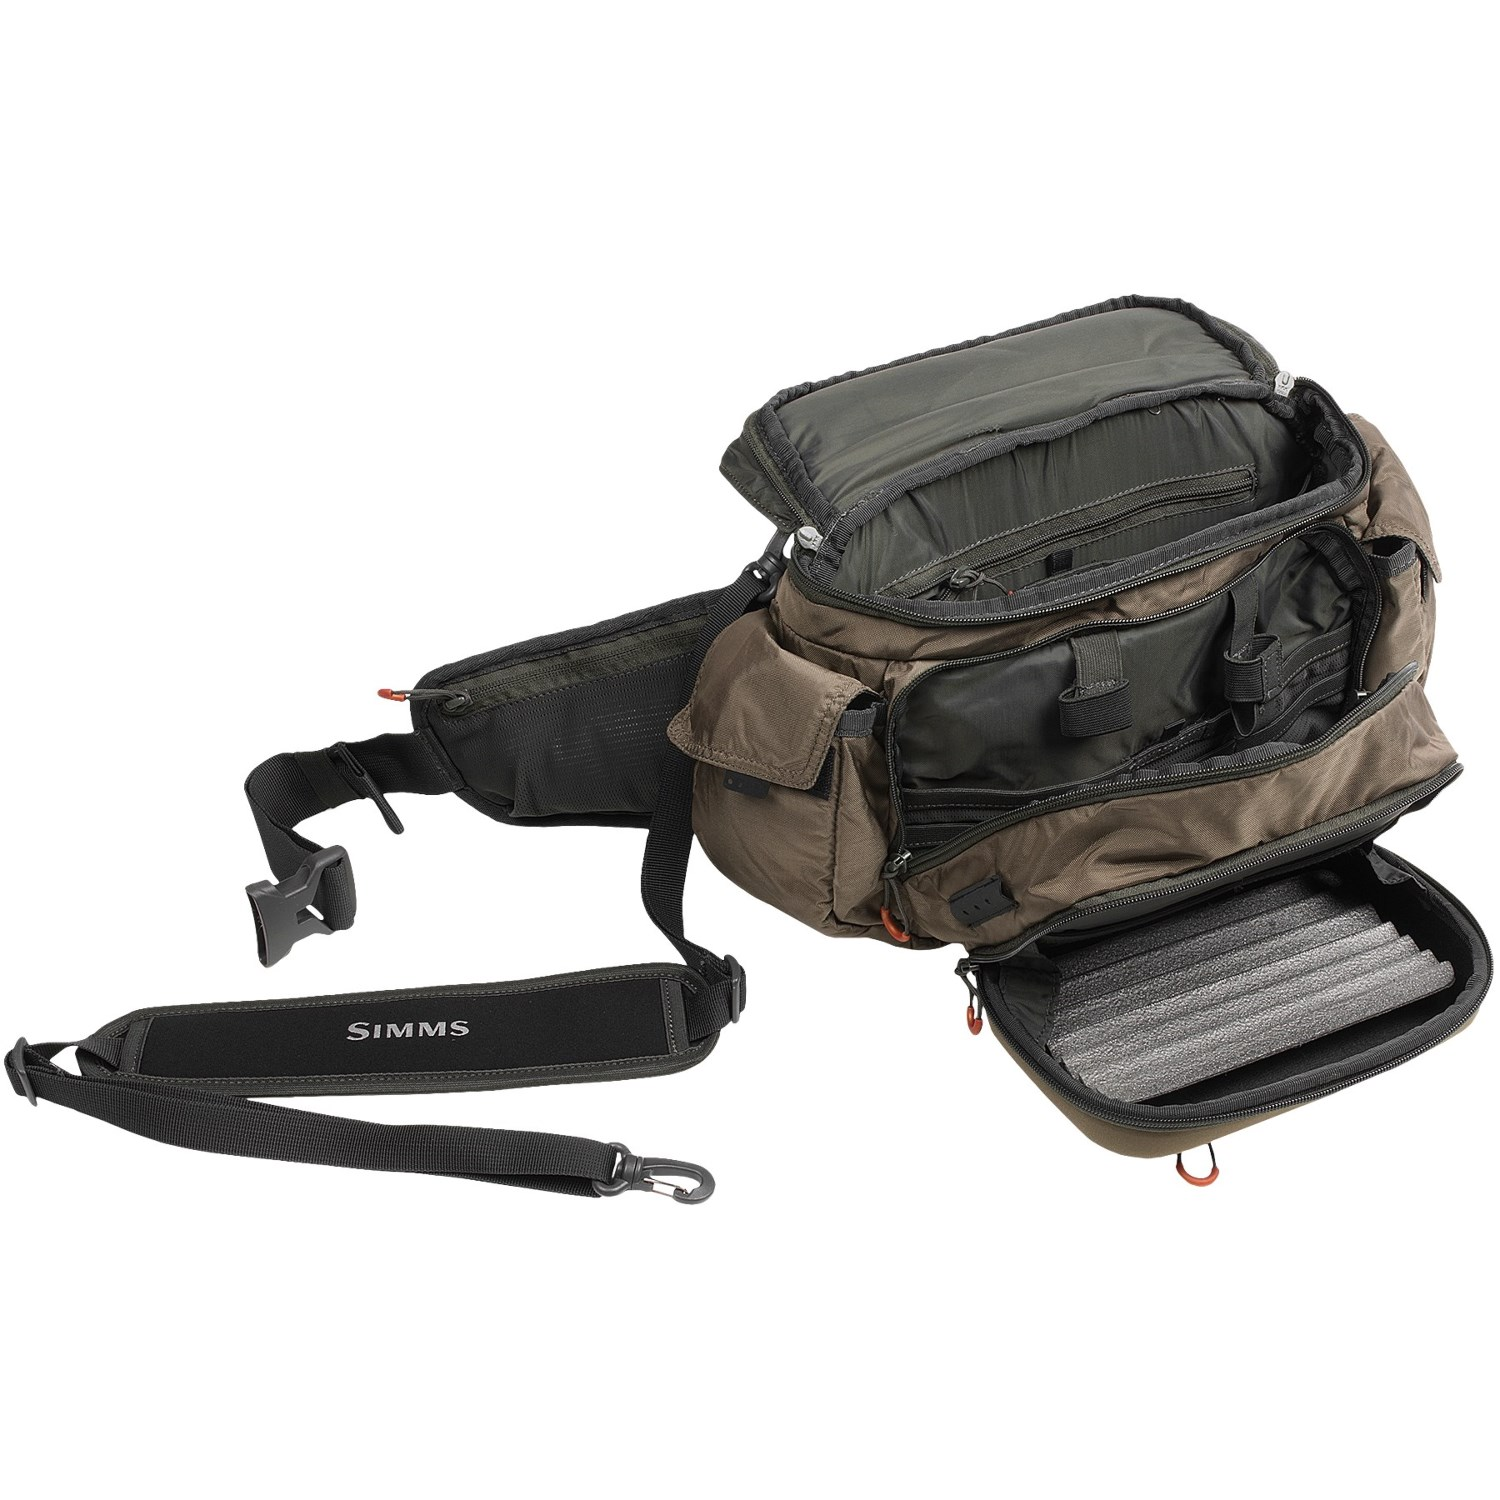 Simms headwaters pro fishing waist pack 6411a save 35 for Fishing waist pack